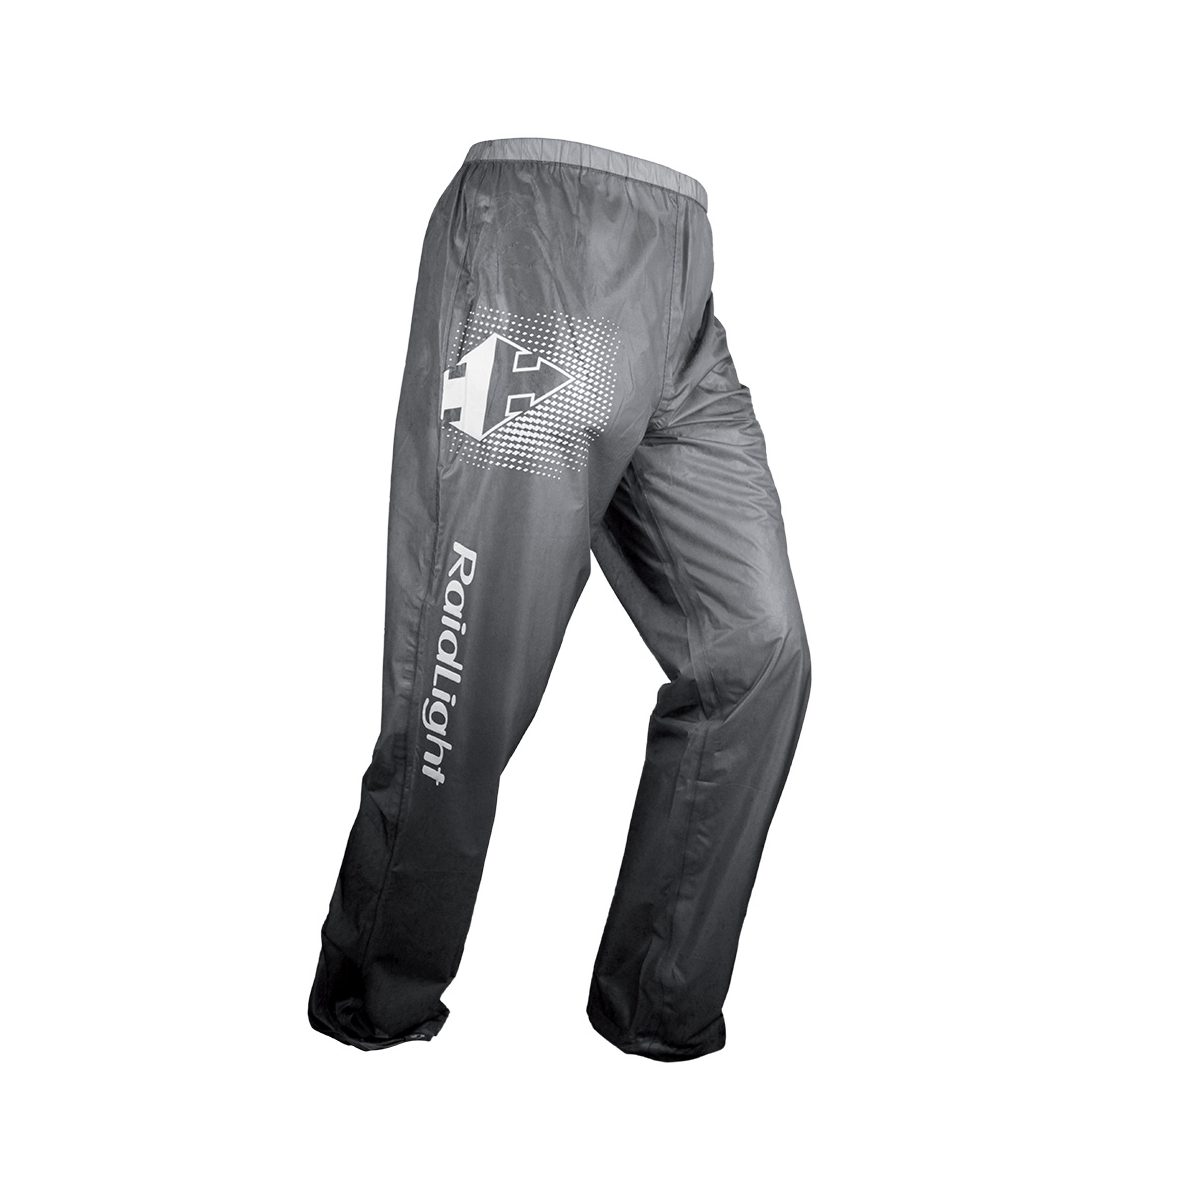 RaidLight Stretchlight Overtrousers MP+